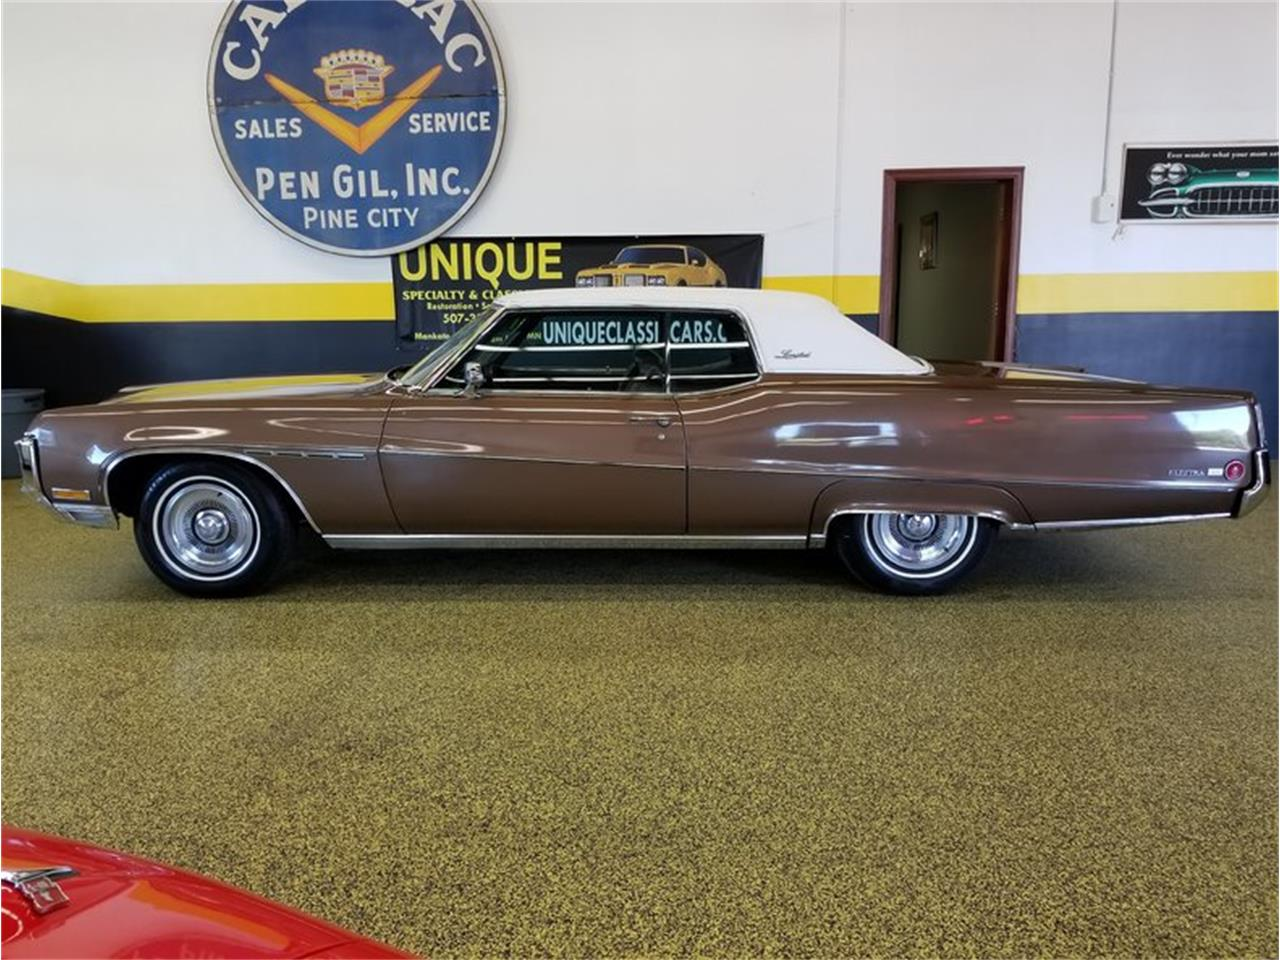 Mankato Car Dealers >> 1970 Buick Electra 225 2dr Hardtop for Sale | ClassicCars ...